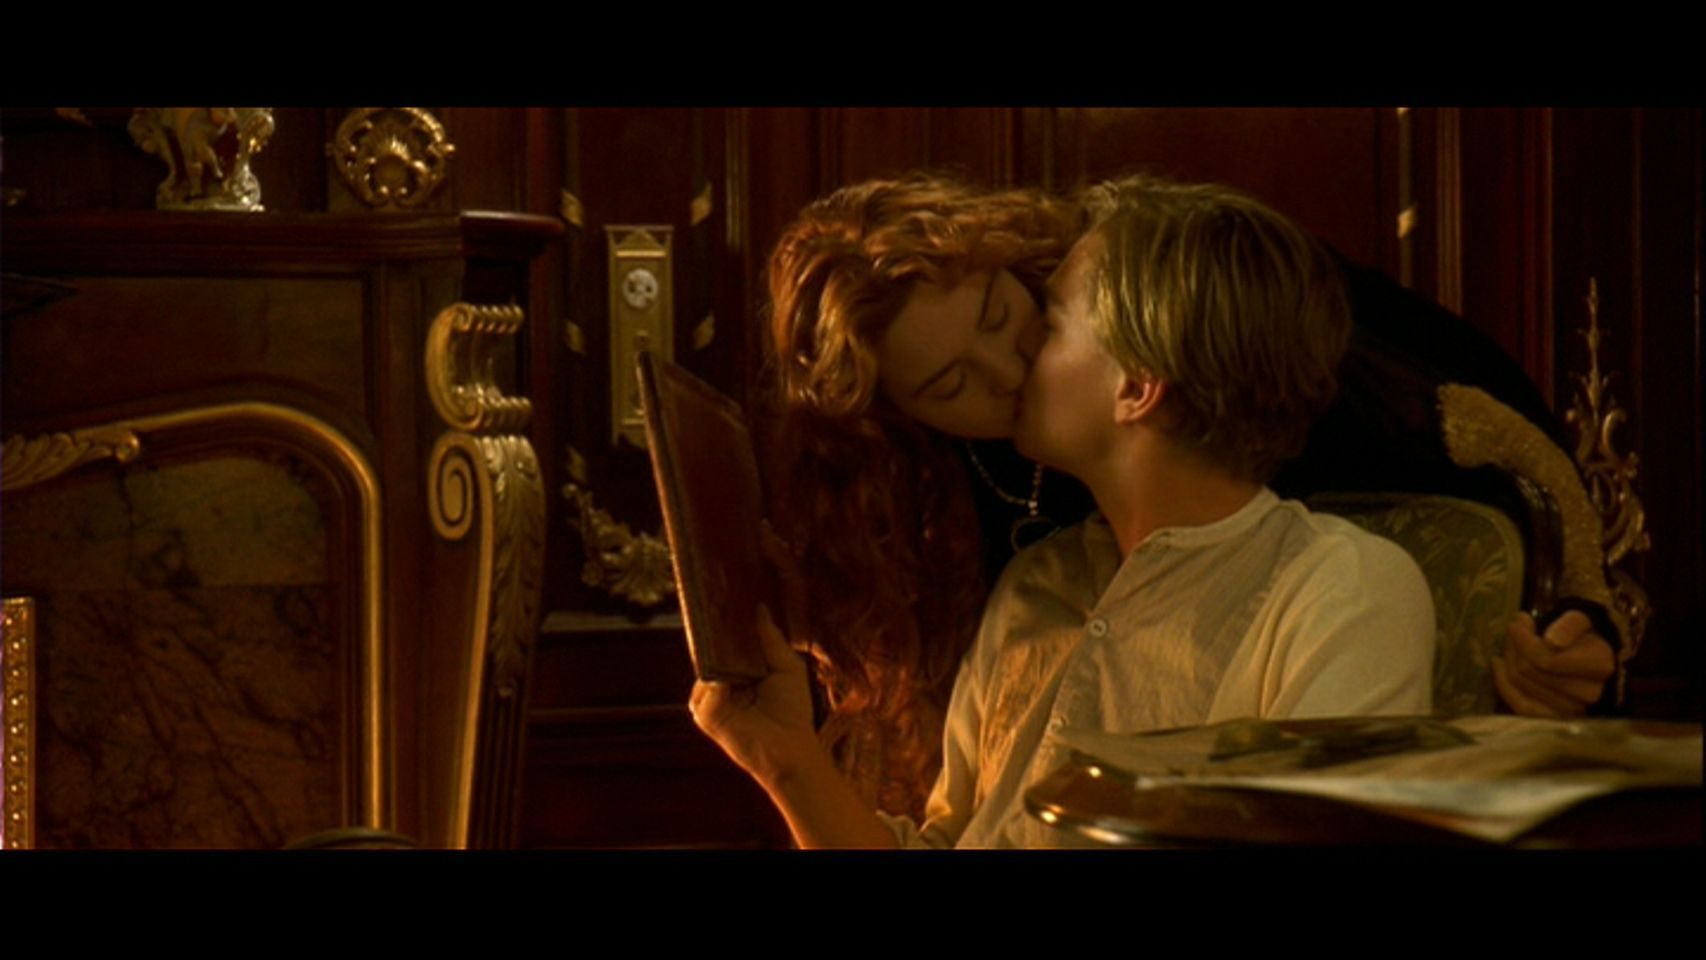 Clip from movie titanic